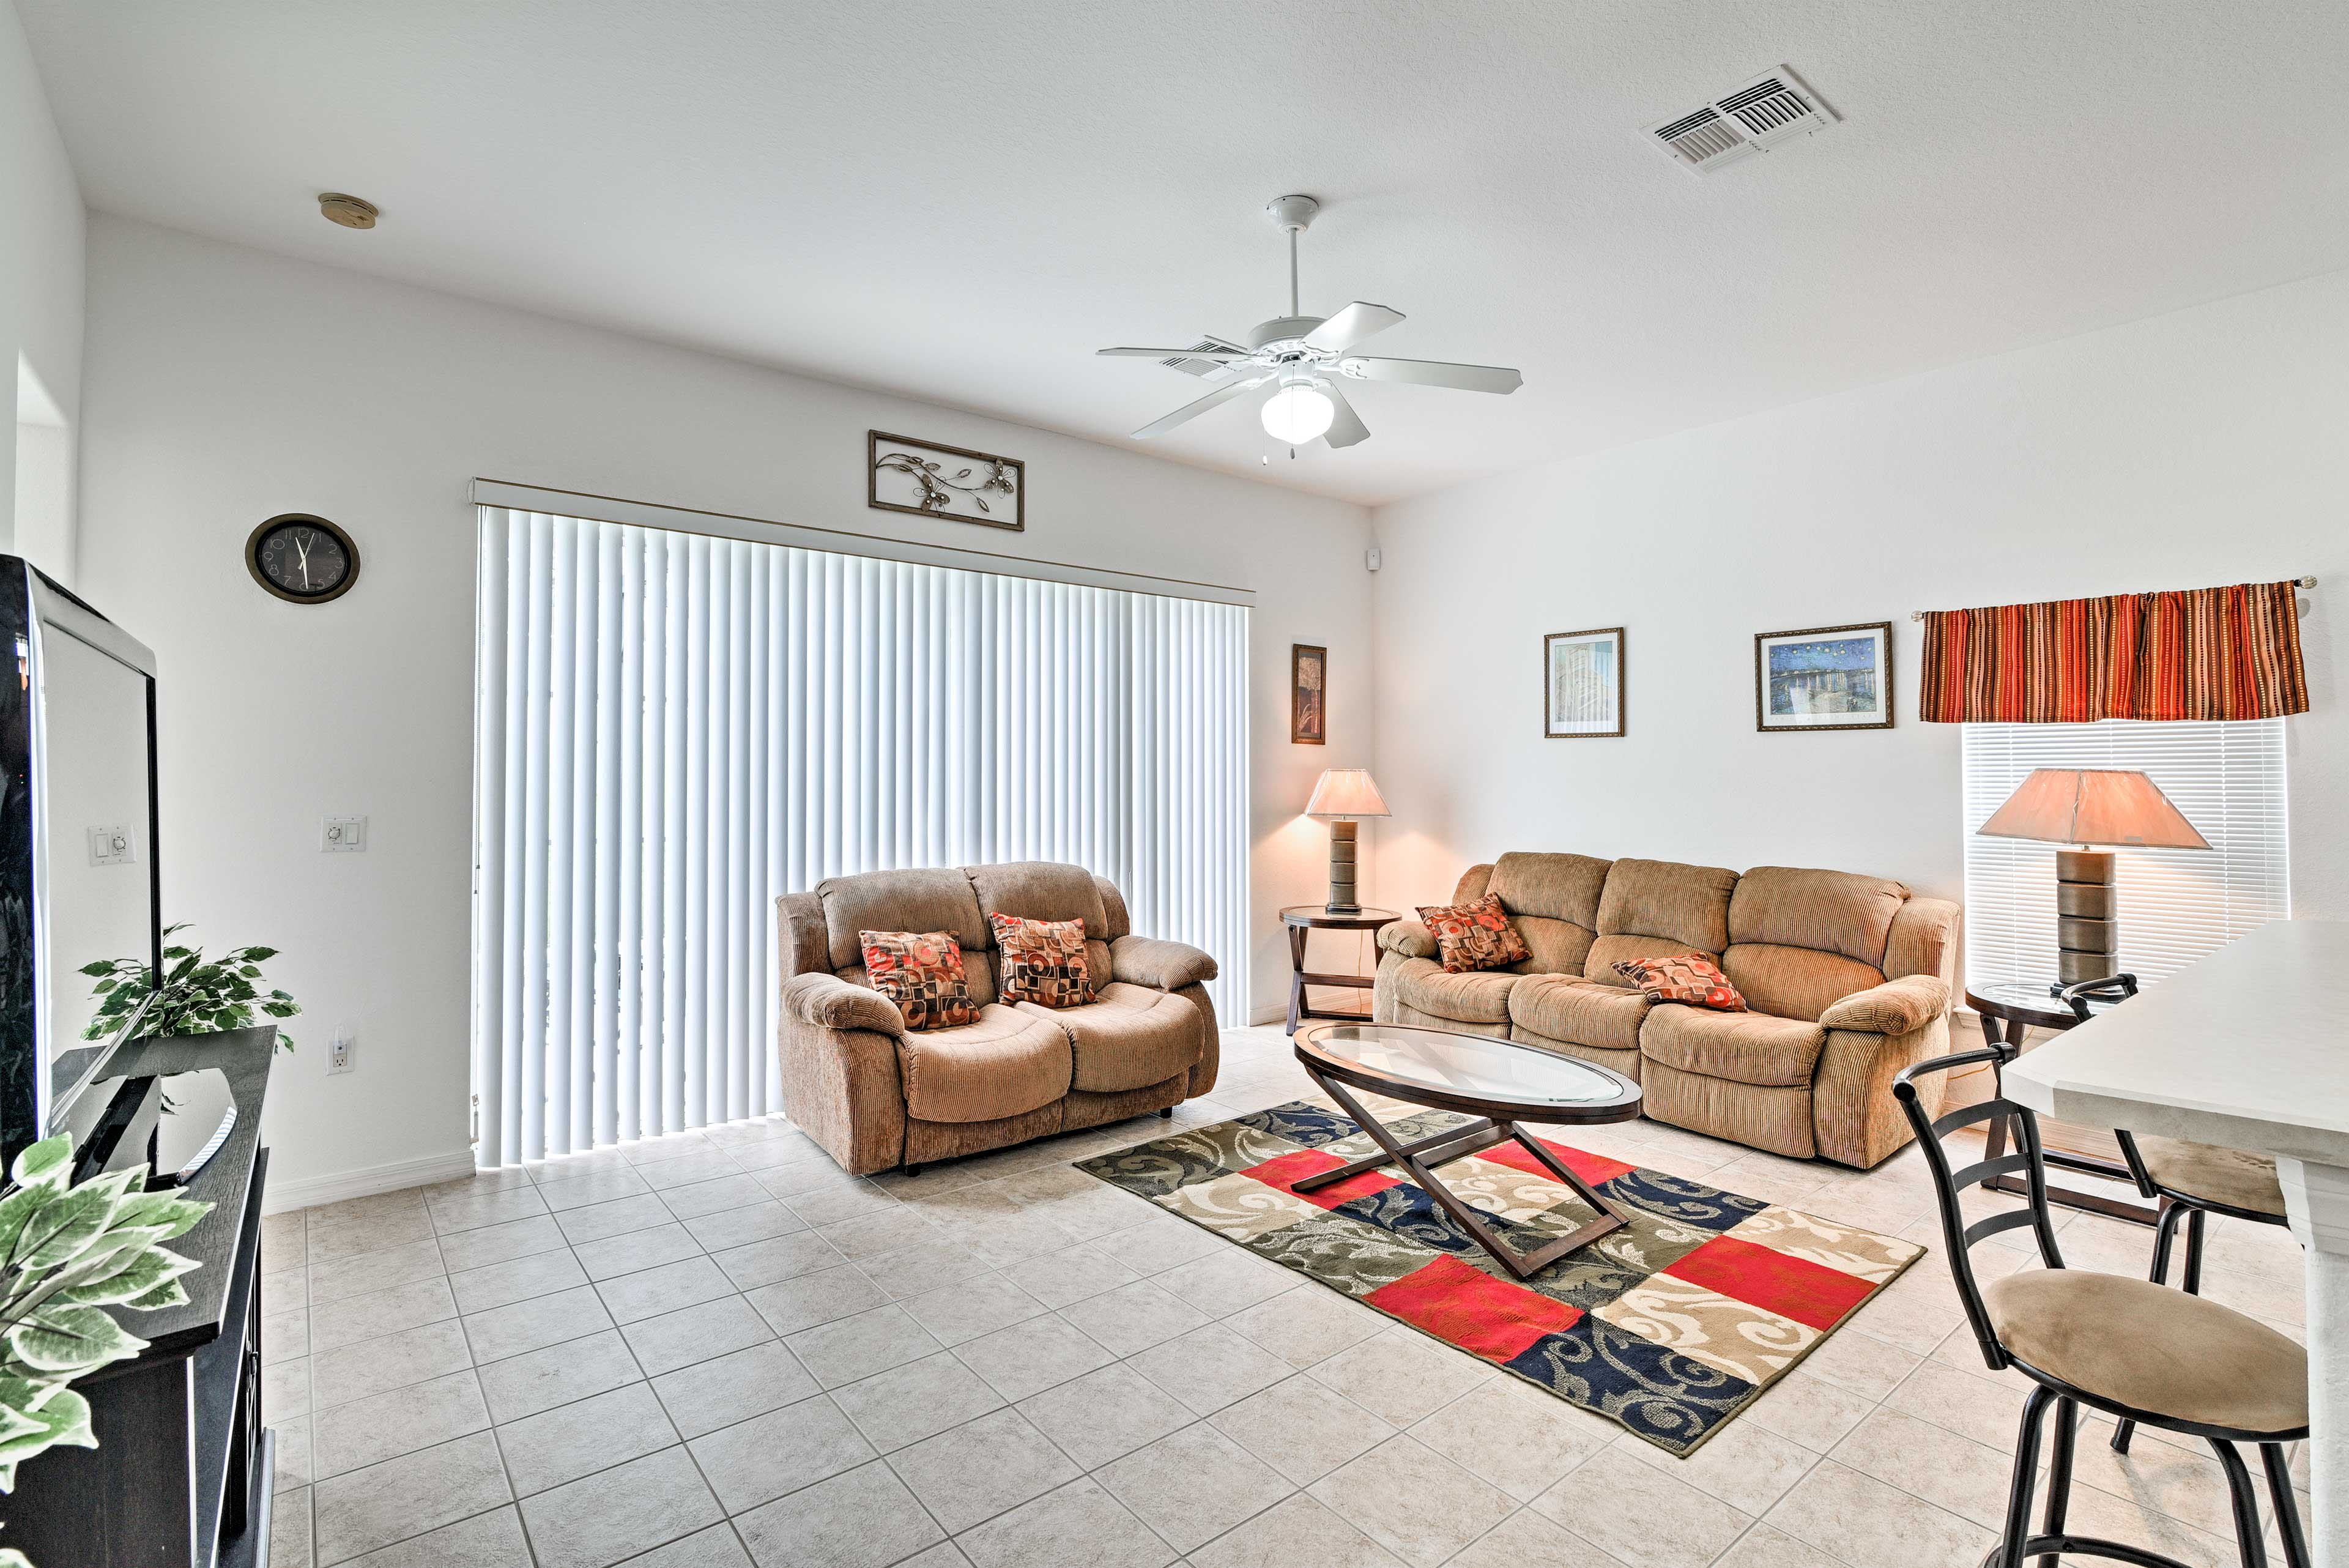 Unwind on the comfy couch in the living room.